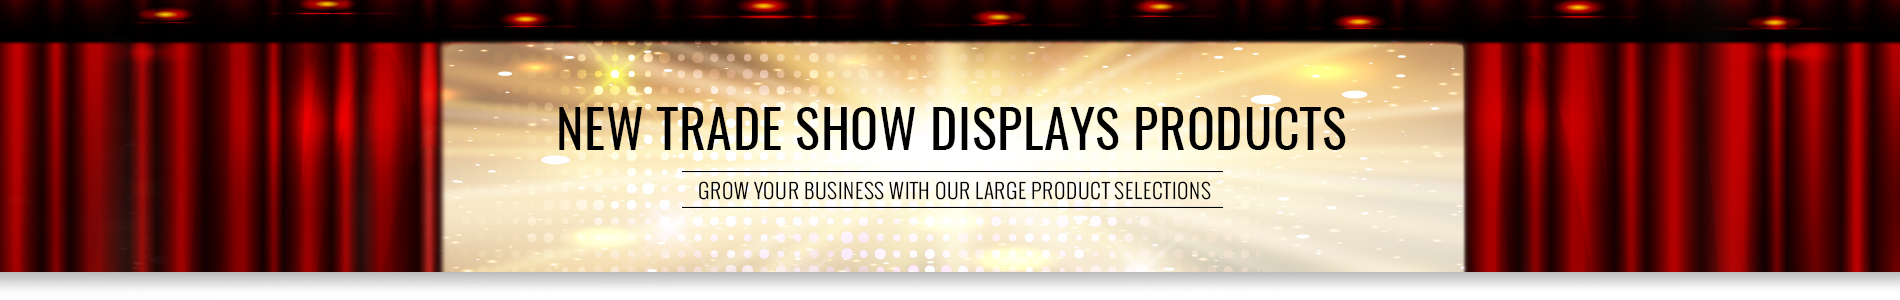 New Trade Show Displays Products